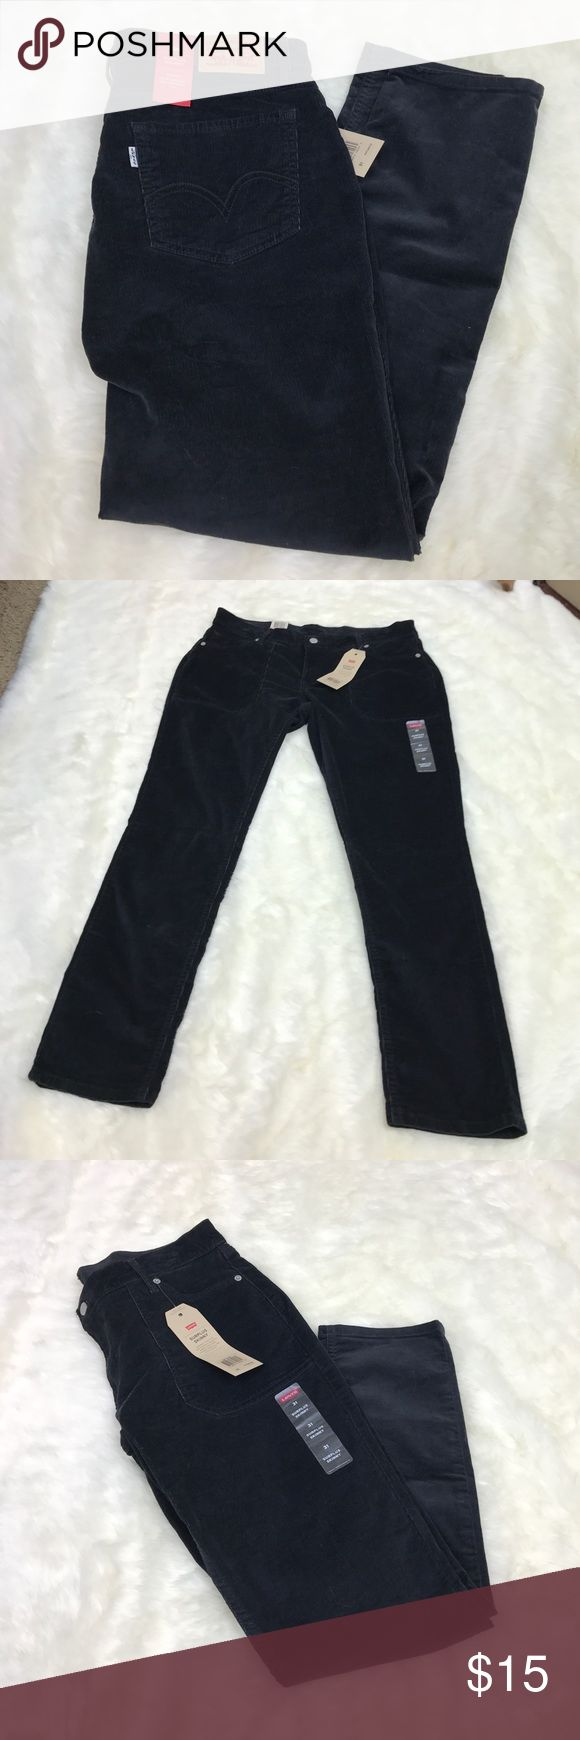 🛑FLASH SALE🛑 Levi's Surplus Skinny Jeans Please feel free to ask any questions, bundle, or make an offer. Levi's corduroy surplus skinny jeans in black. Size 31. New with tags. Levi's Jeans Skinny